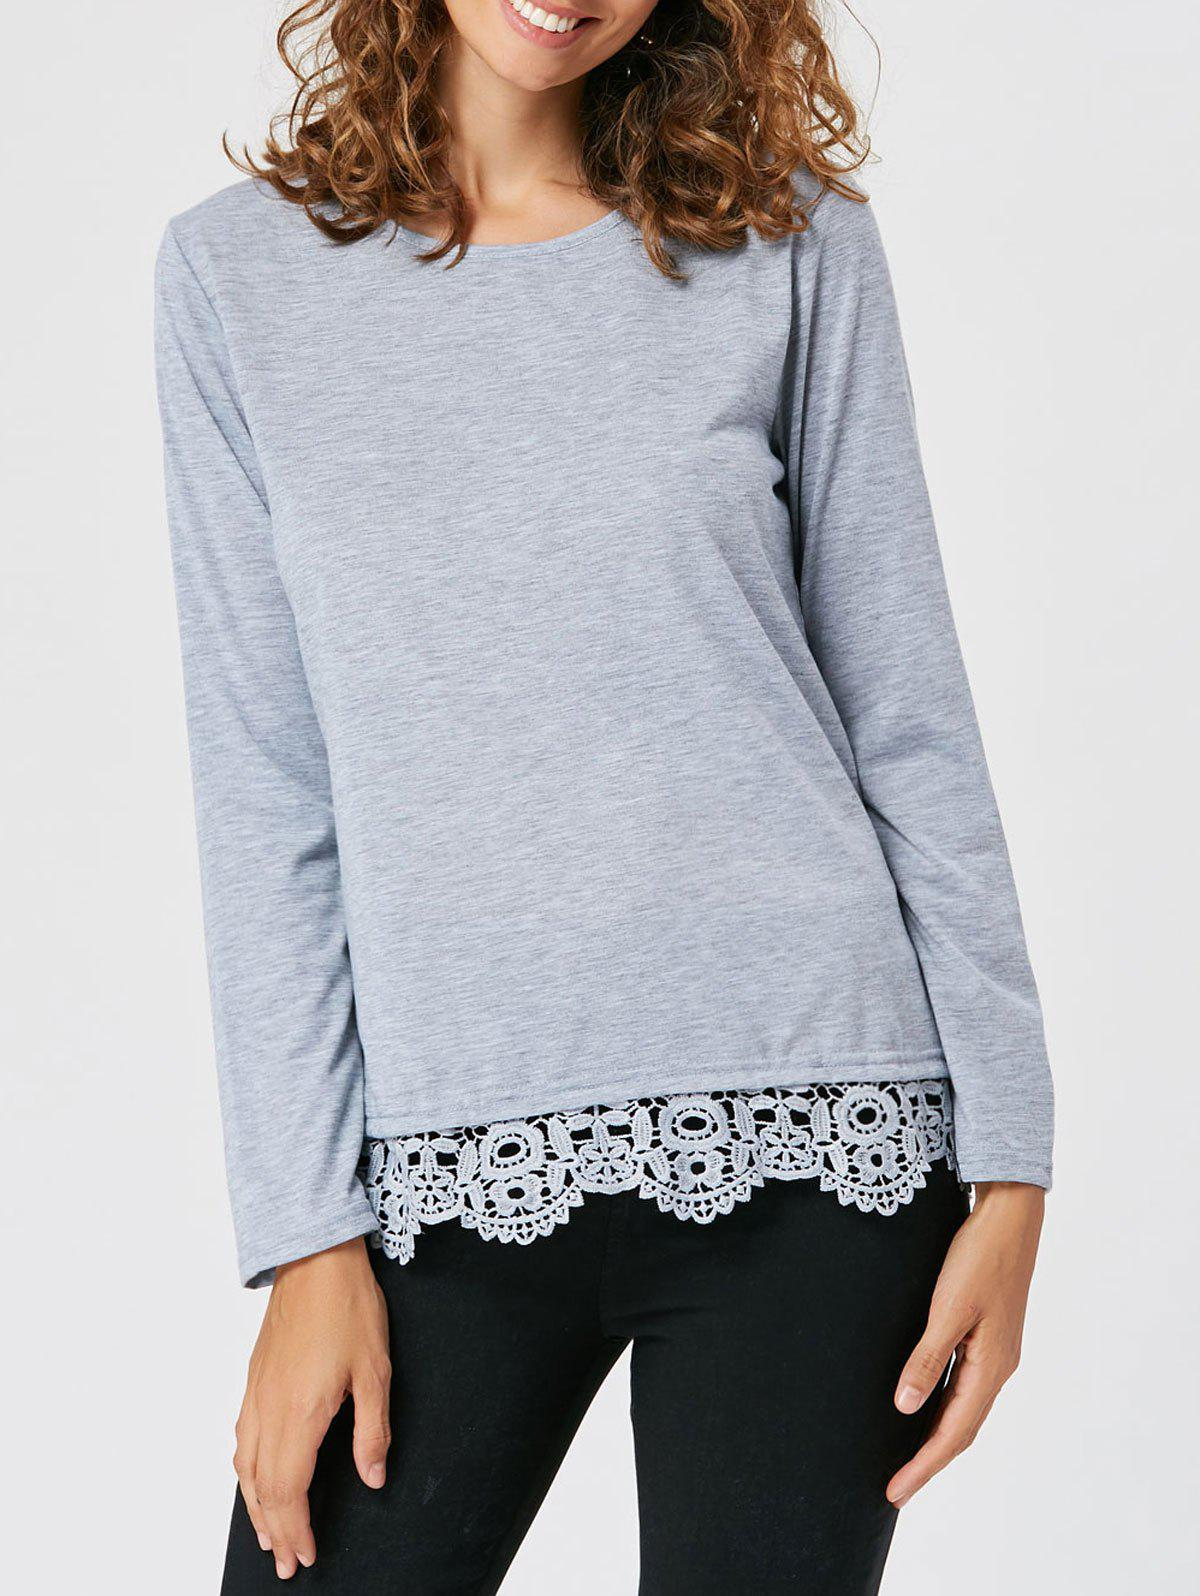 Long Sleeve Lace Insert Tunic T-shirt - GRAY XL